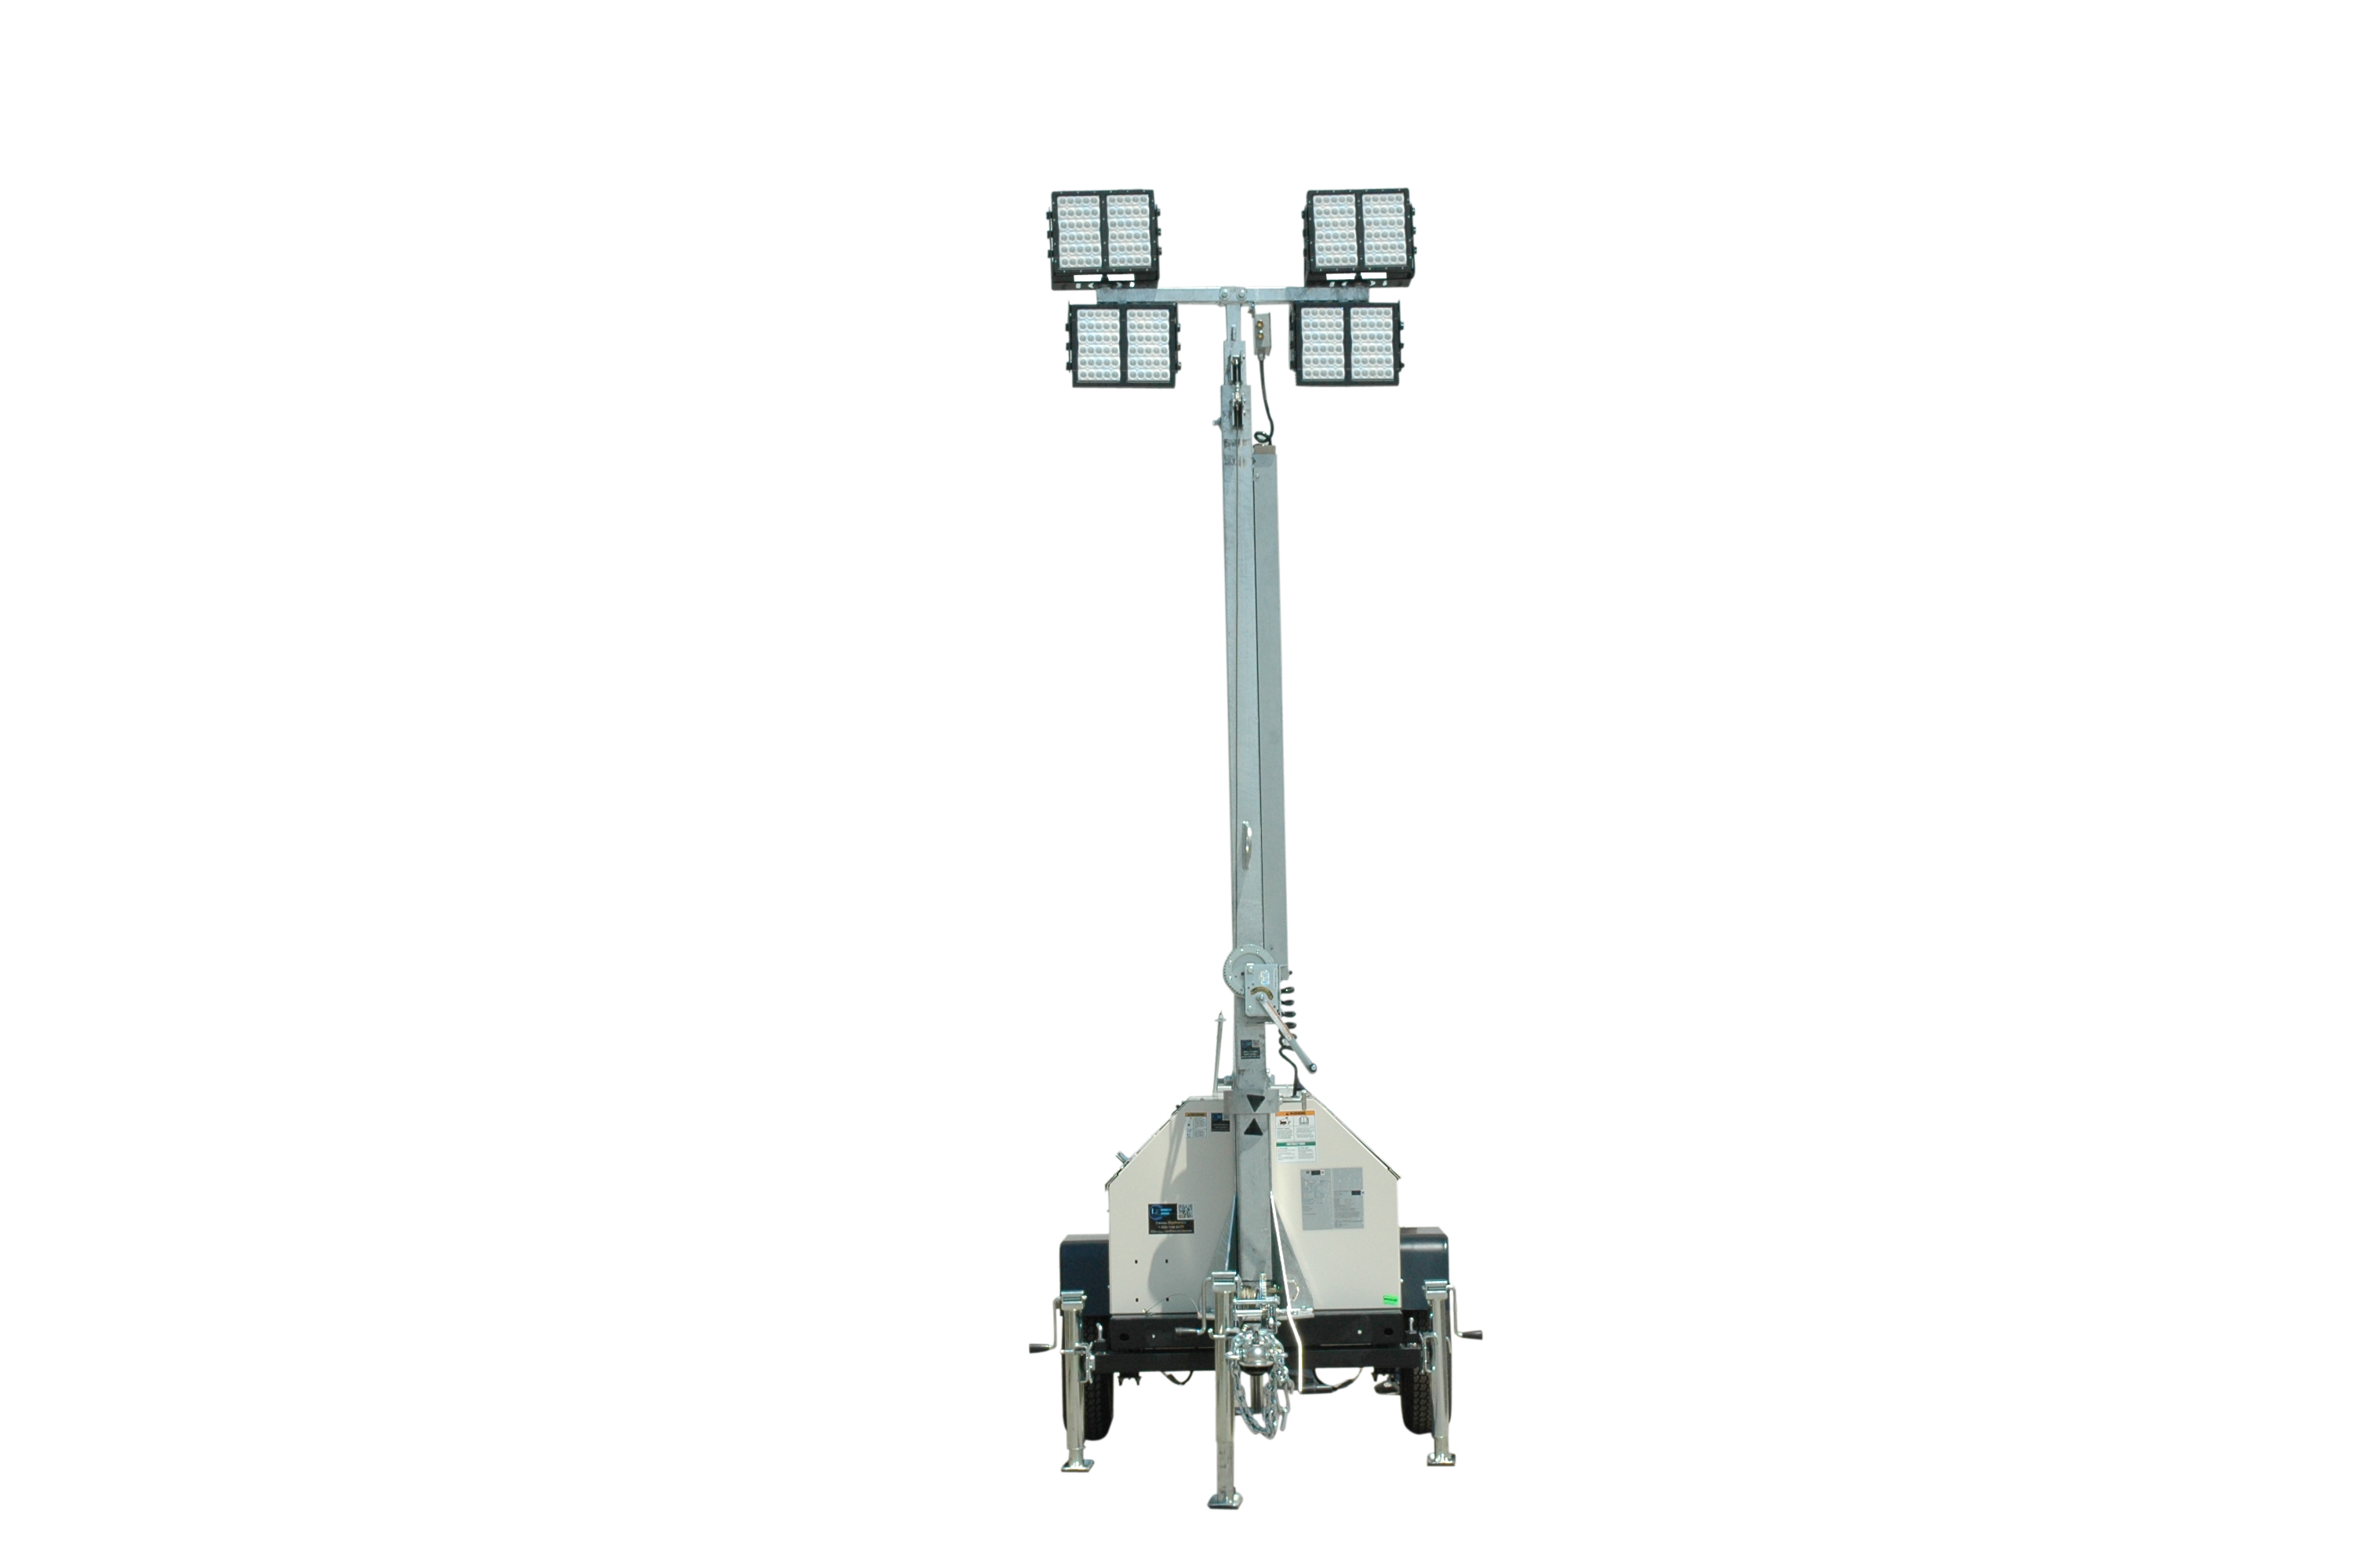 Mobile Led Light Tower With Diesel Generator Released By